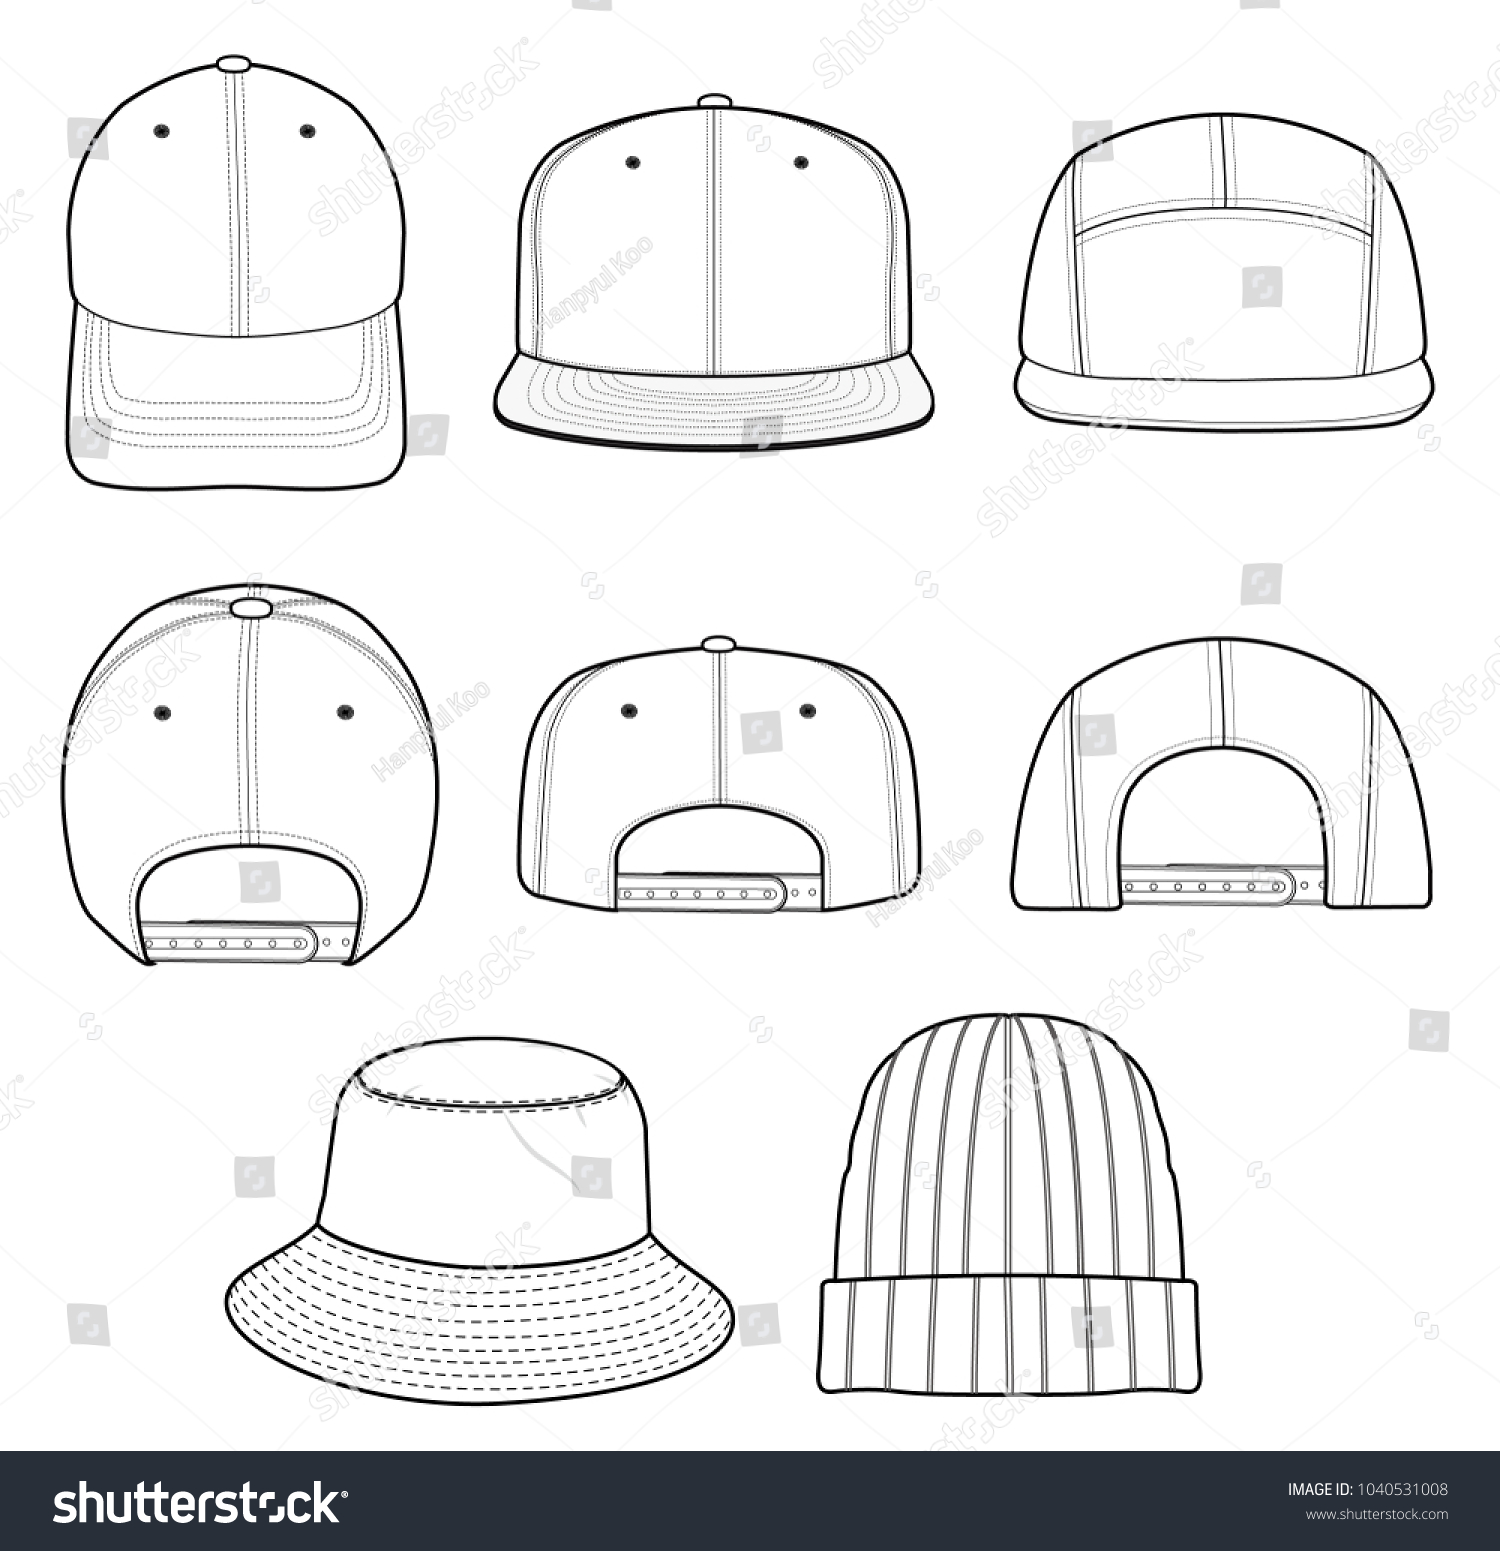 Hat Beanie Design 2018 Illustration Flat Sketches Template